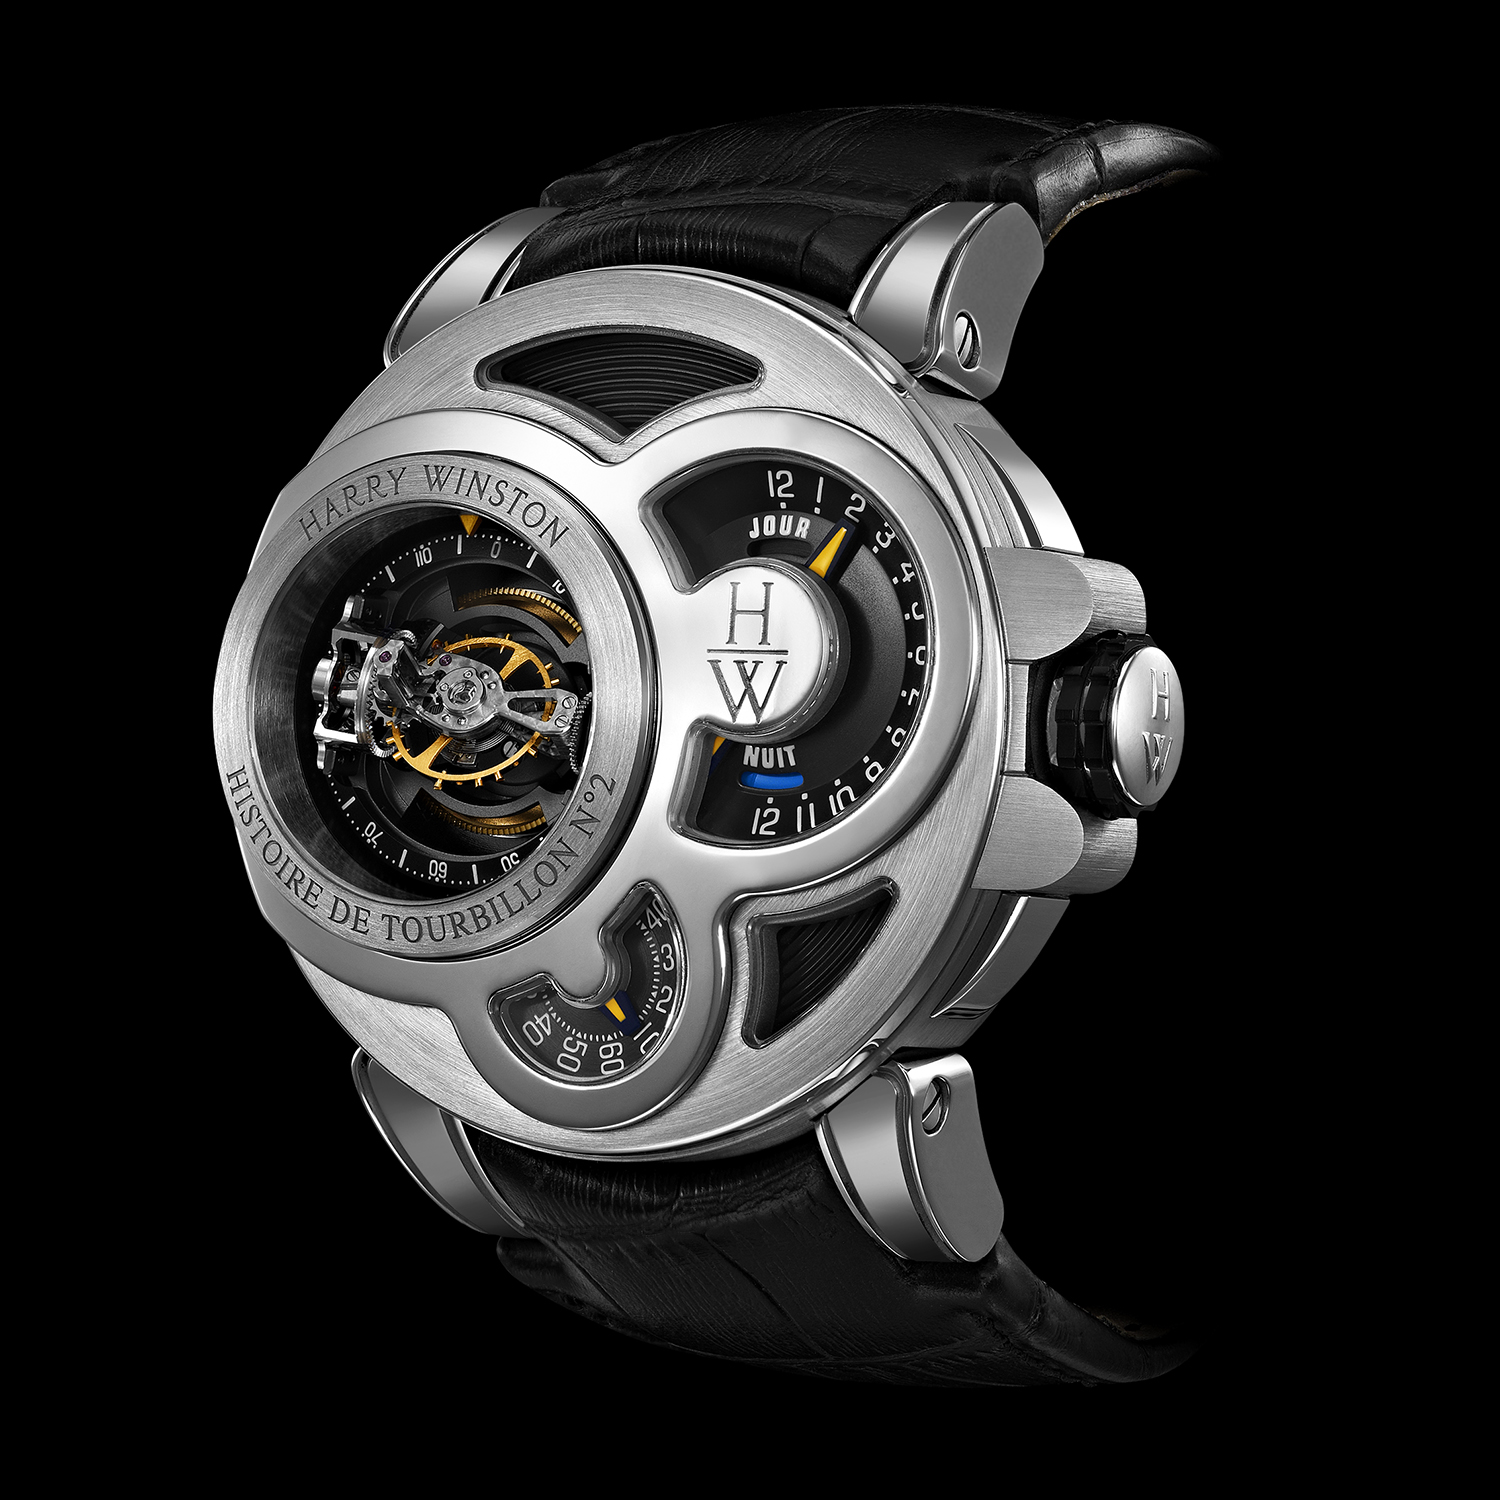 HIGH JEWELRY LIMITED EDITION WATCH MADE BY HARRY WINSTON AND SHOT BY DAVID FILIBERTI